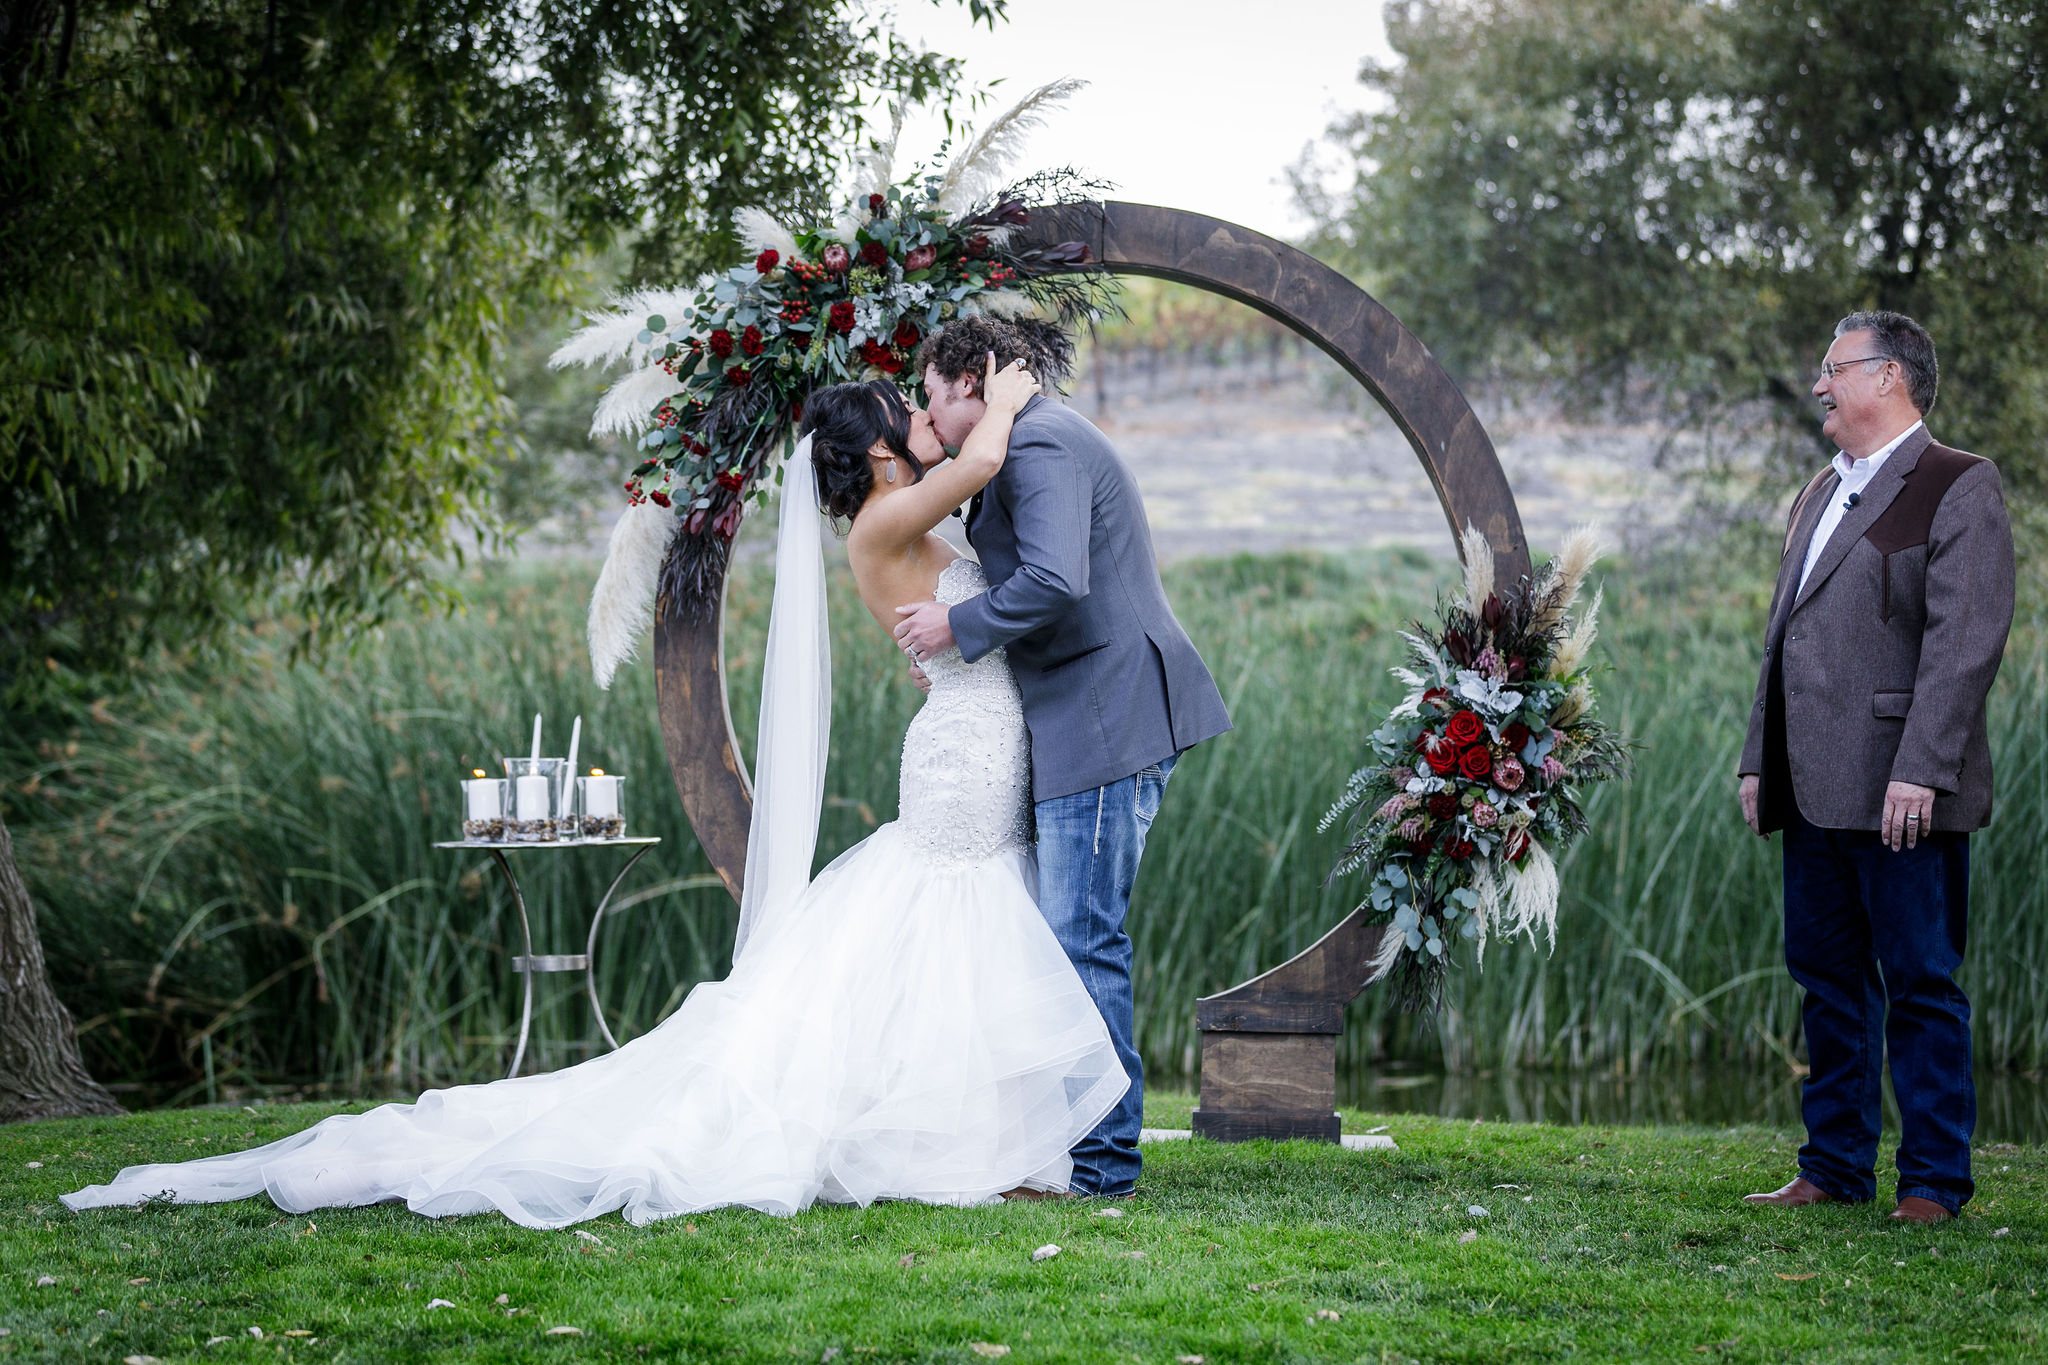 www.santabarbarawedding.com | Kiel Rucker | Greengate Ranch | Kramer Events | All About Events | De La Fleur Flowers | Bride and Groom First Kiss